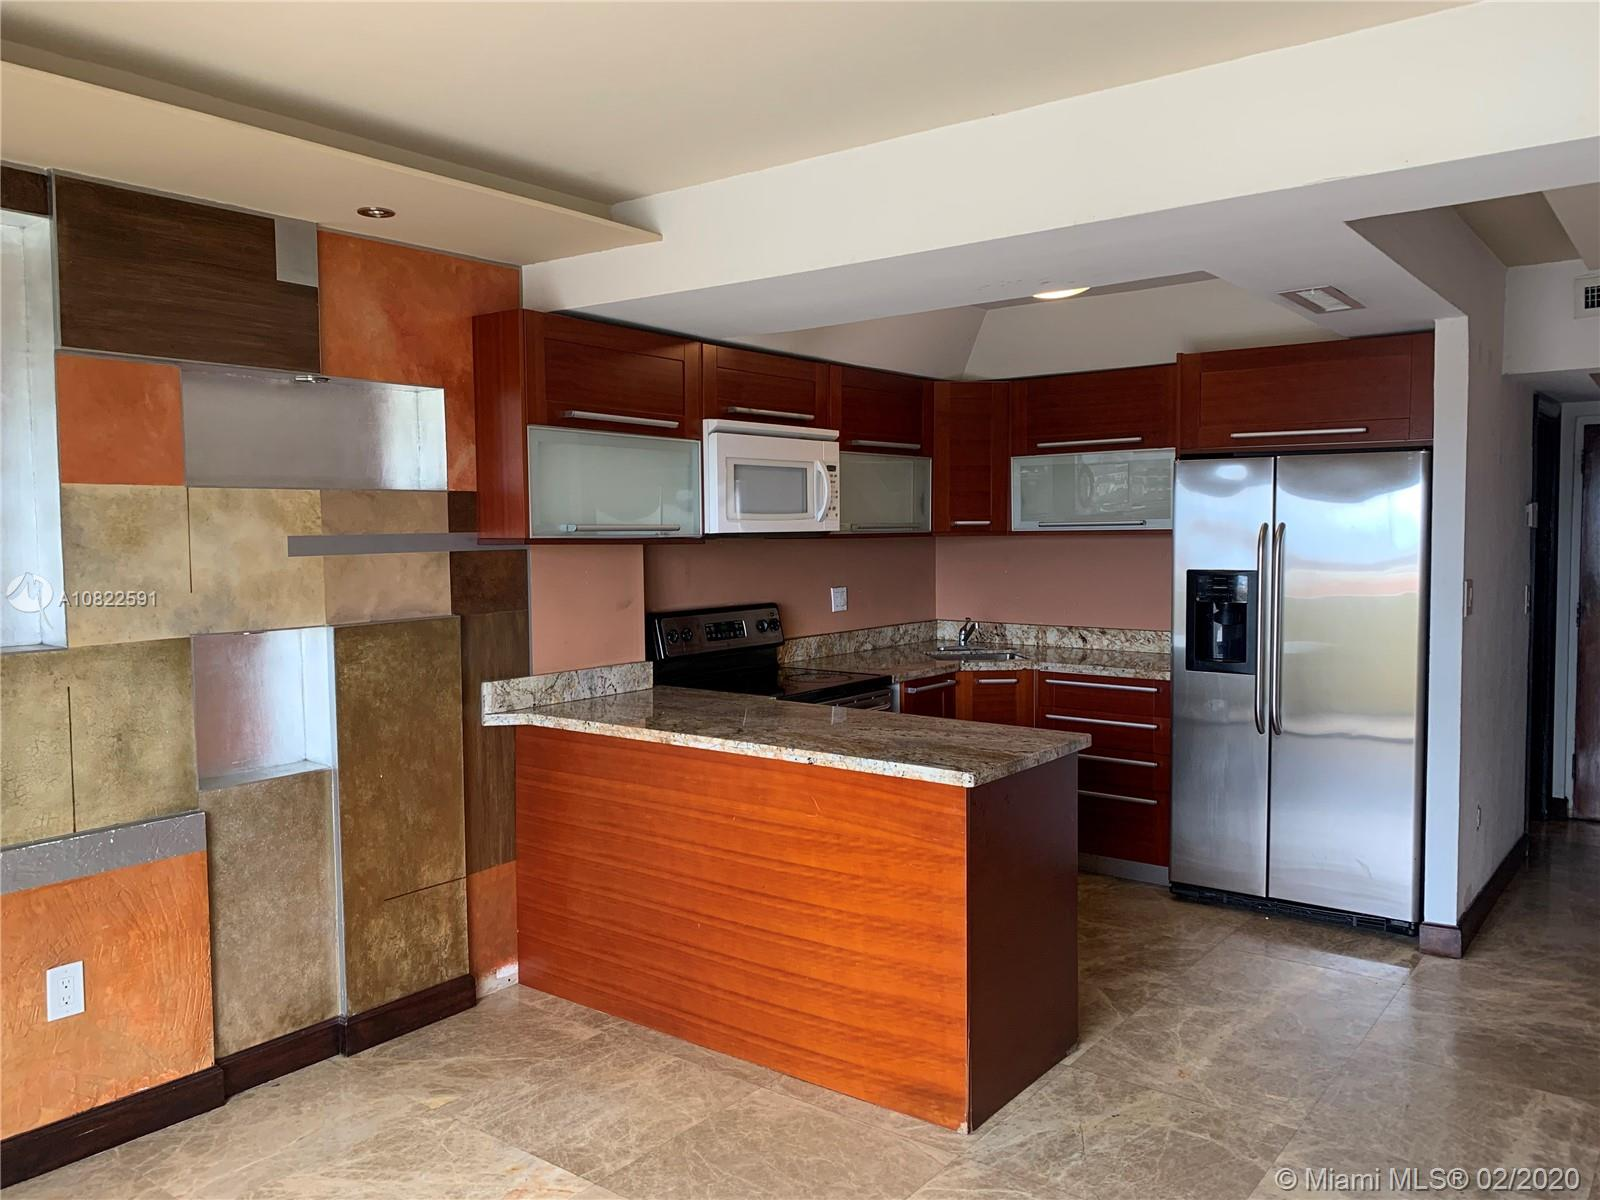 Great location with easy access to 836, MIA, Miami Downtown, Courts , Hospitals 2 Bedroom 1.5 baths in a great condition with a Washer/Dryer inside, Marble floor and laminate in second floor, stainless steel appliances , balcony face to Miami downtown skyline with a great view.Gated community.